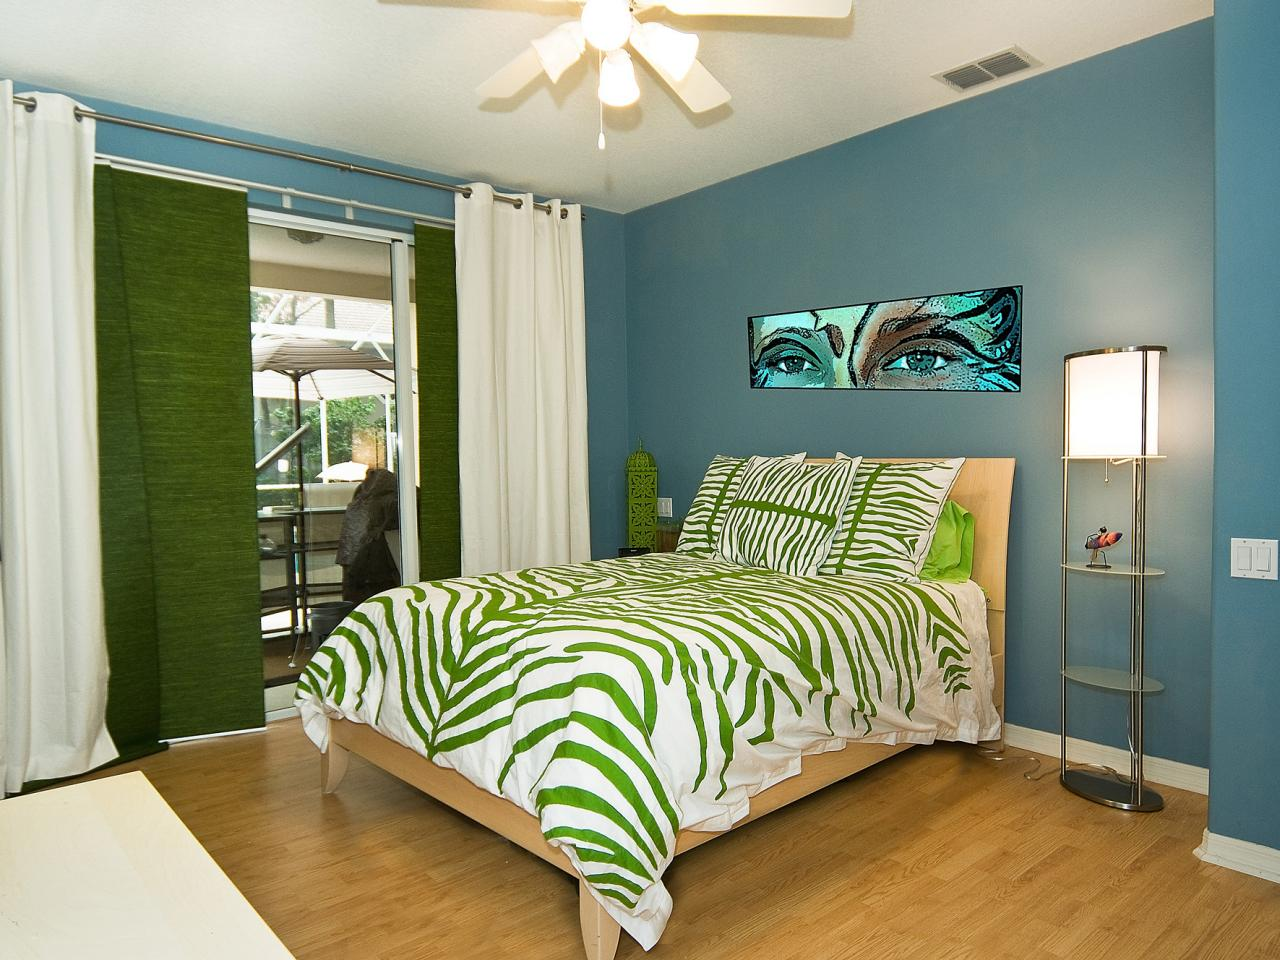 Sassy and sophisticated teen and tween bedroom ideas for Ideas bedroom designs